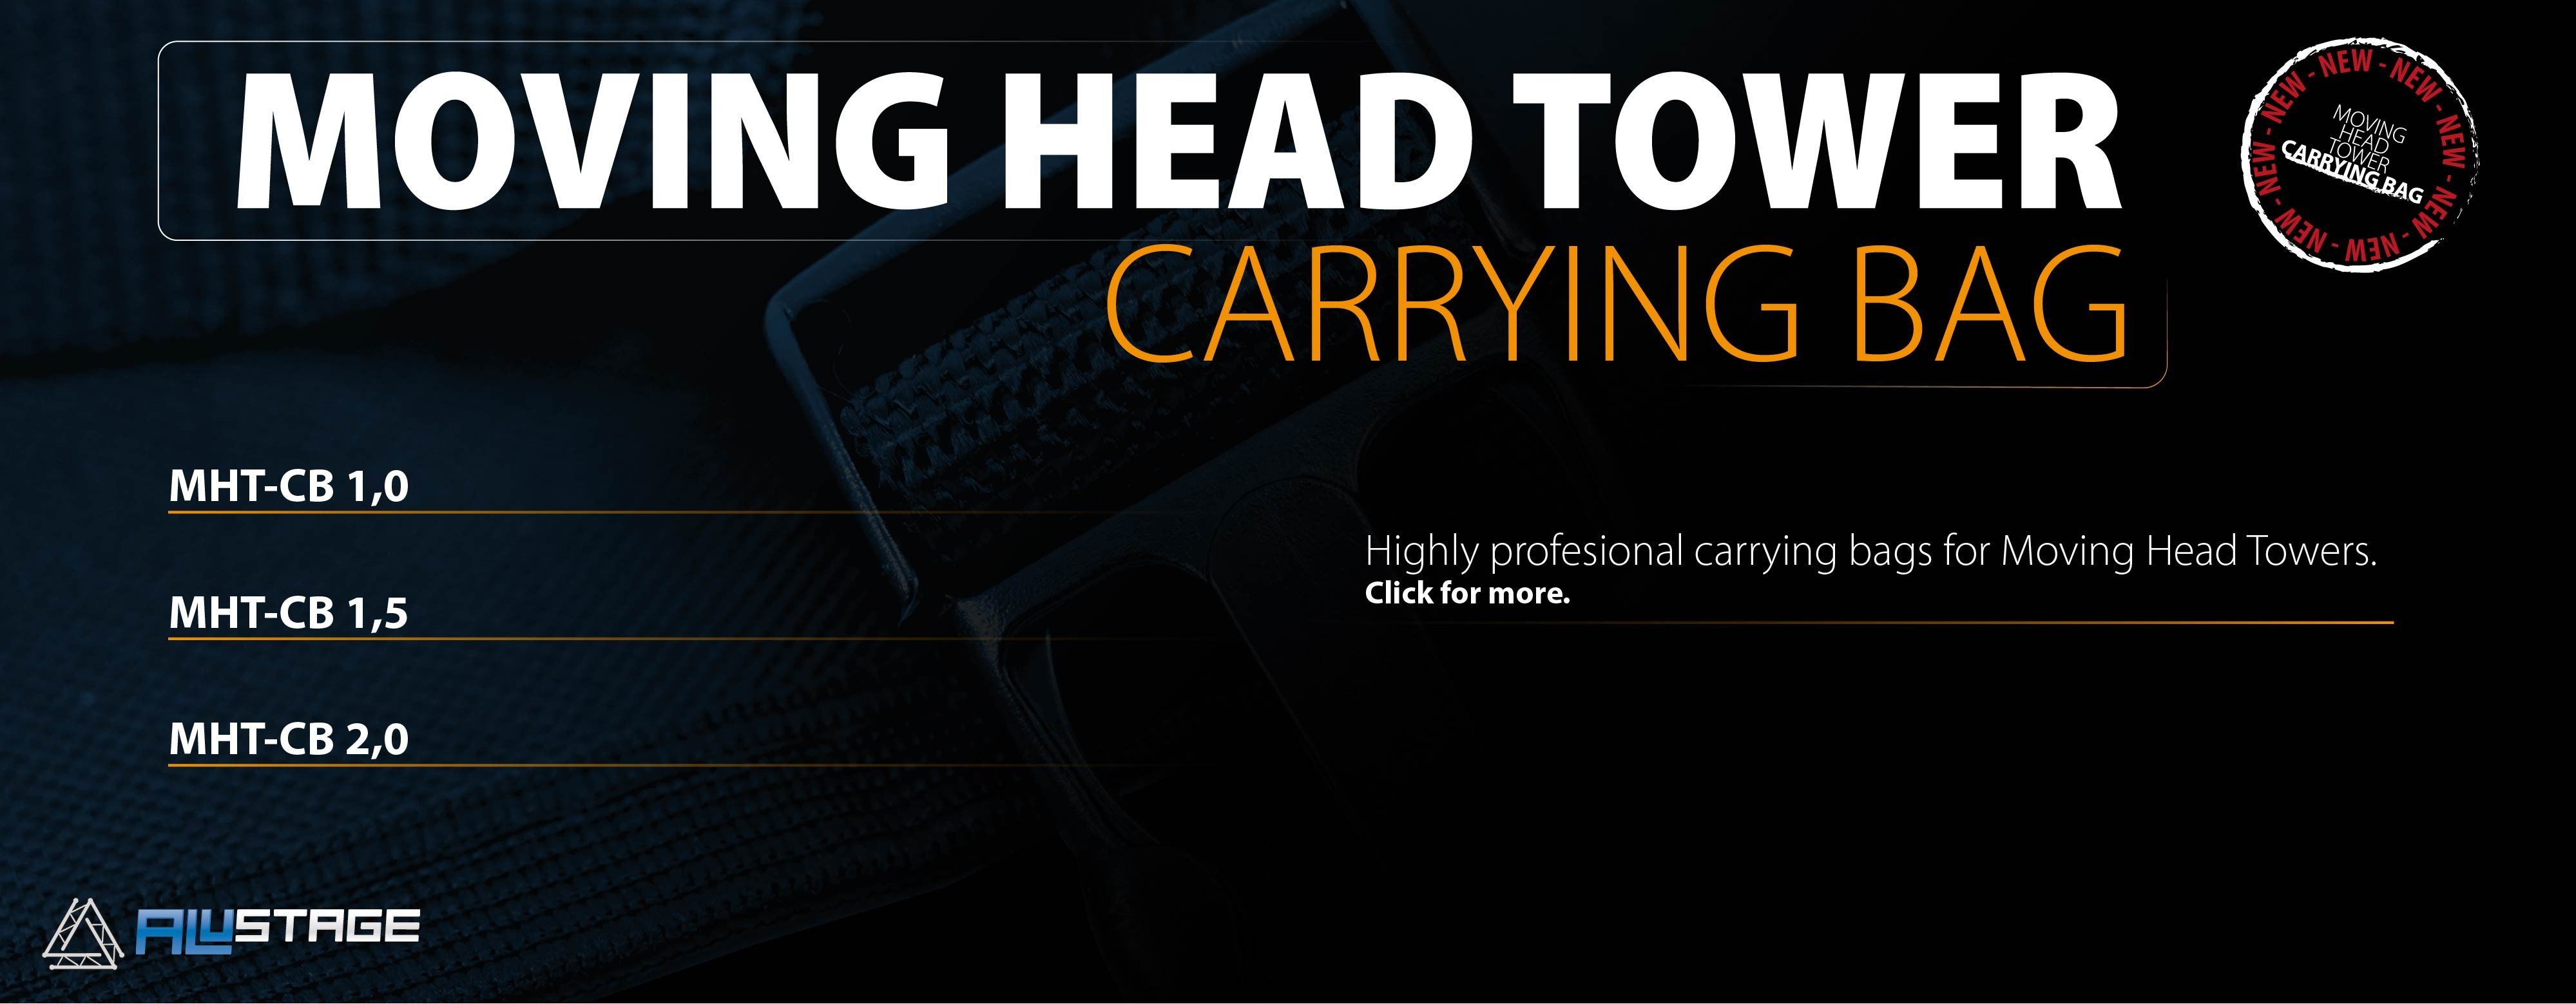 New Carrying Bags for Moving Head Tower